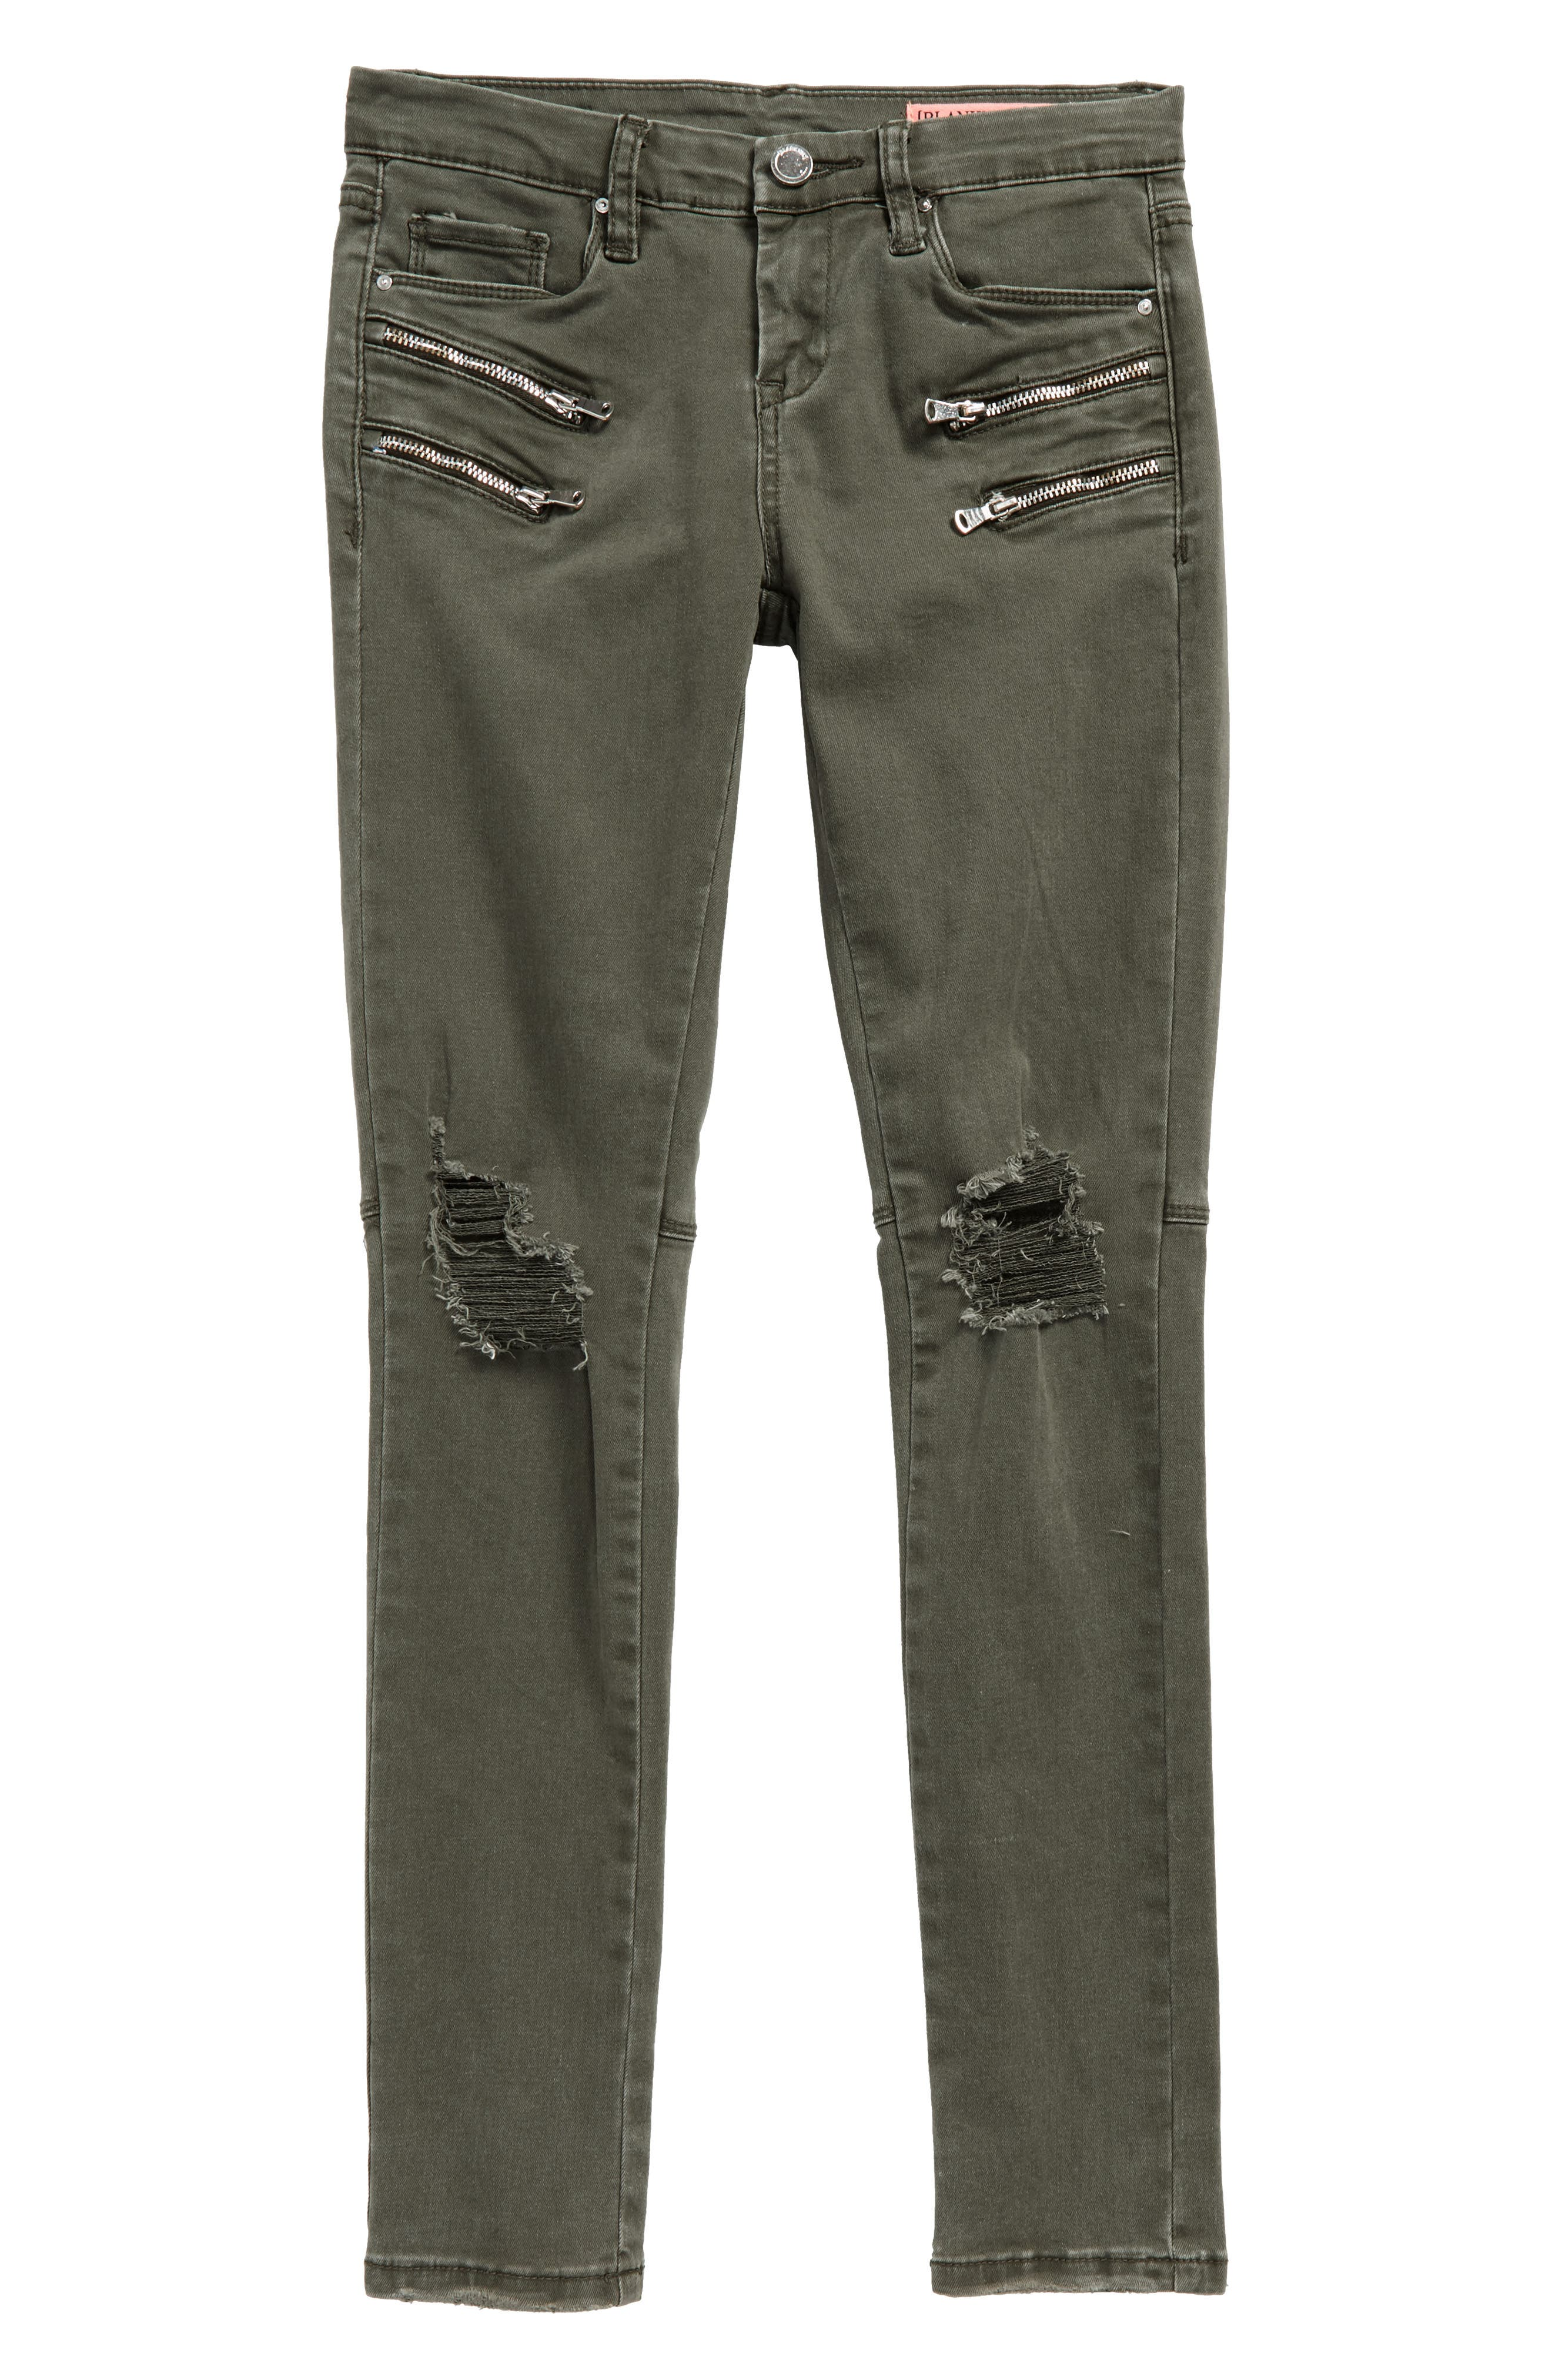 BLANKNYC Olive Twist Moto Skinny Jeans (Big Girls)